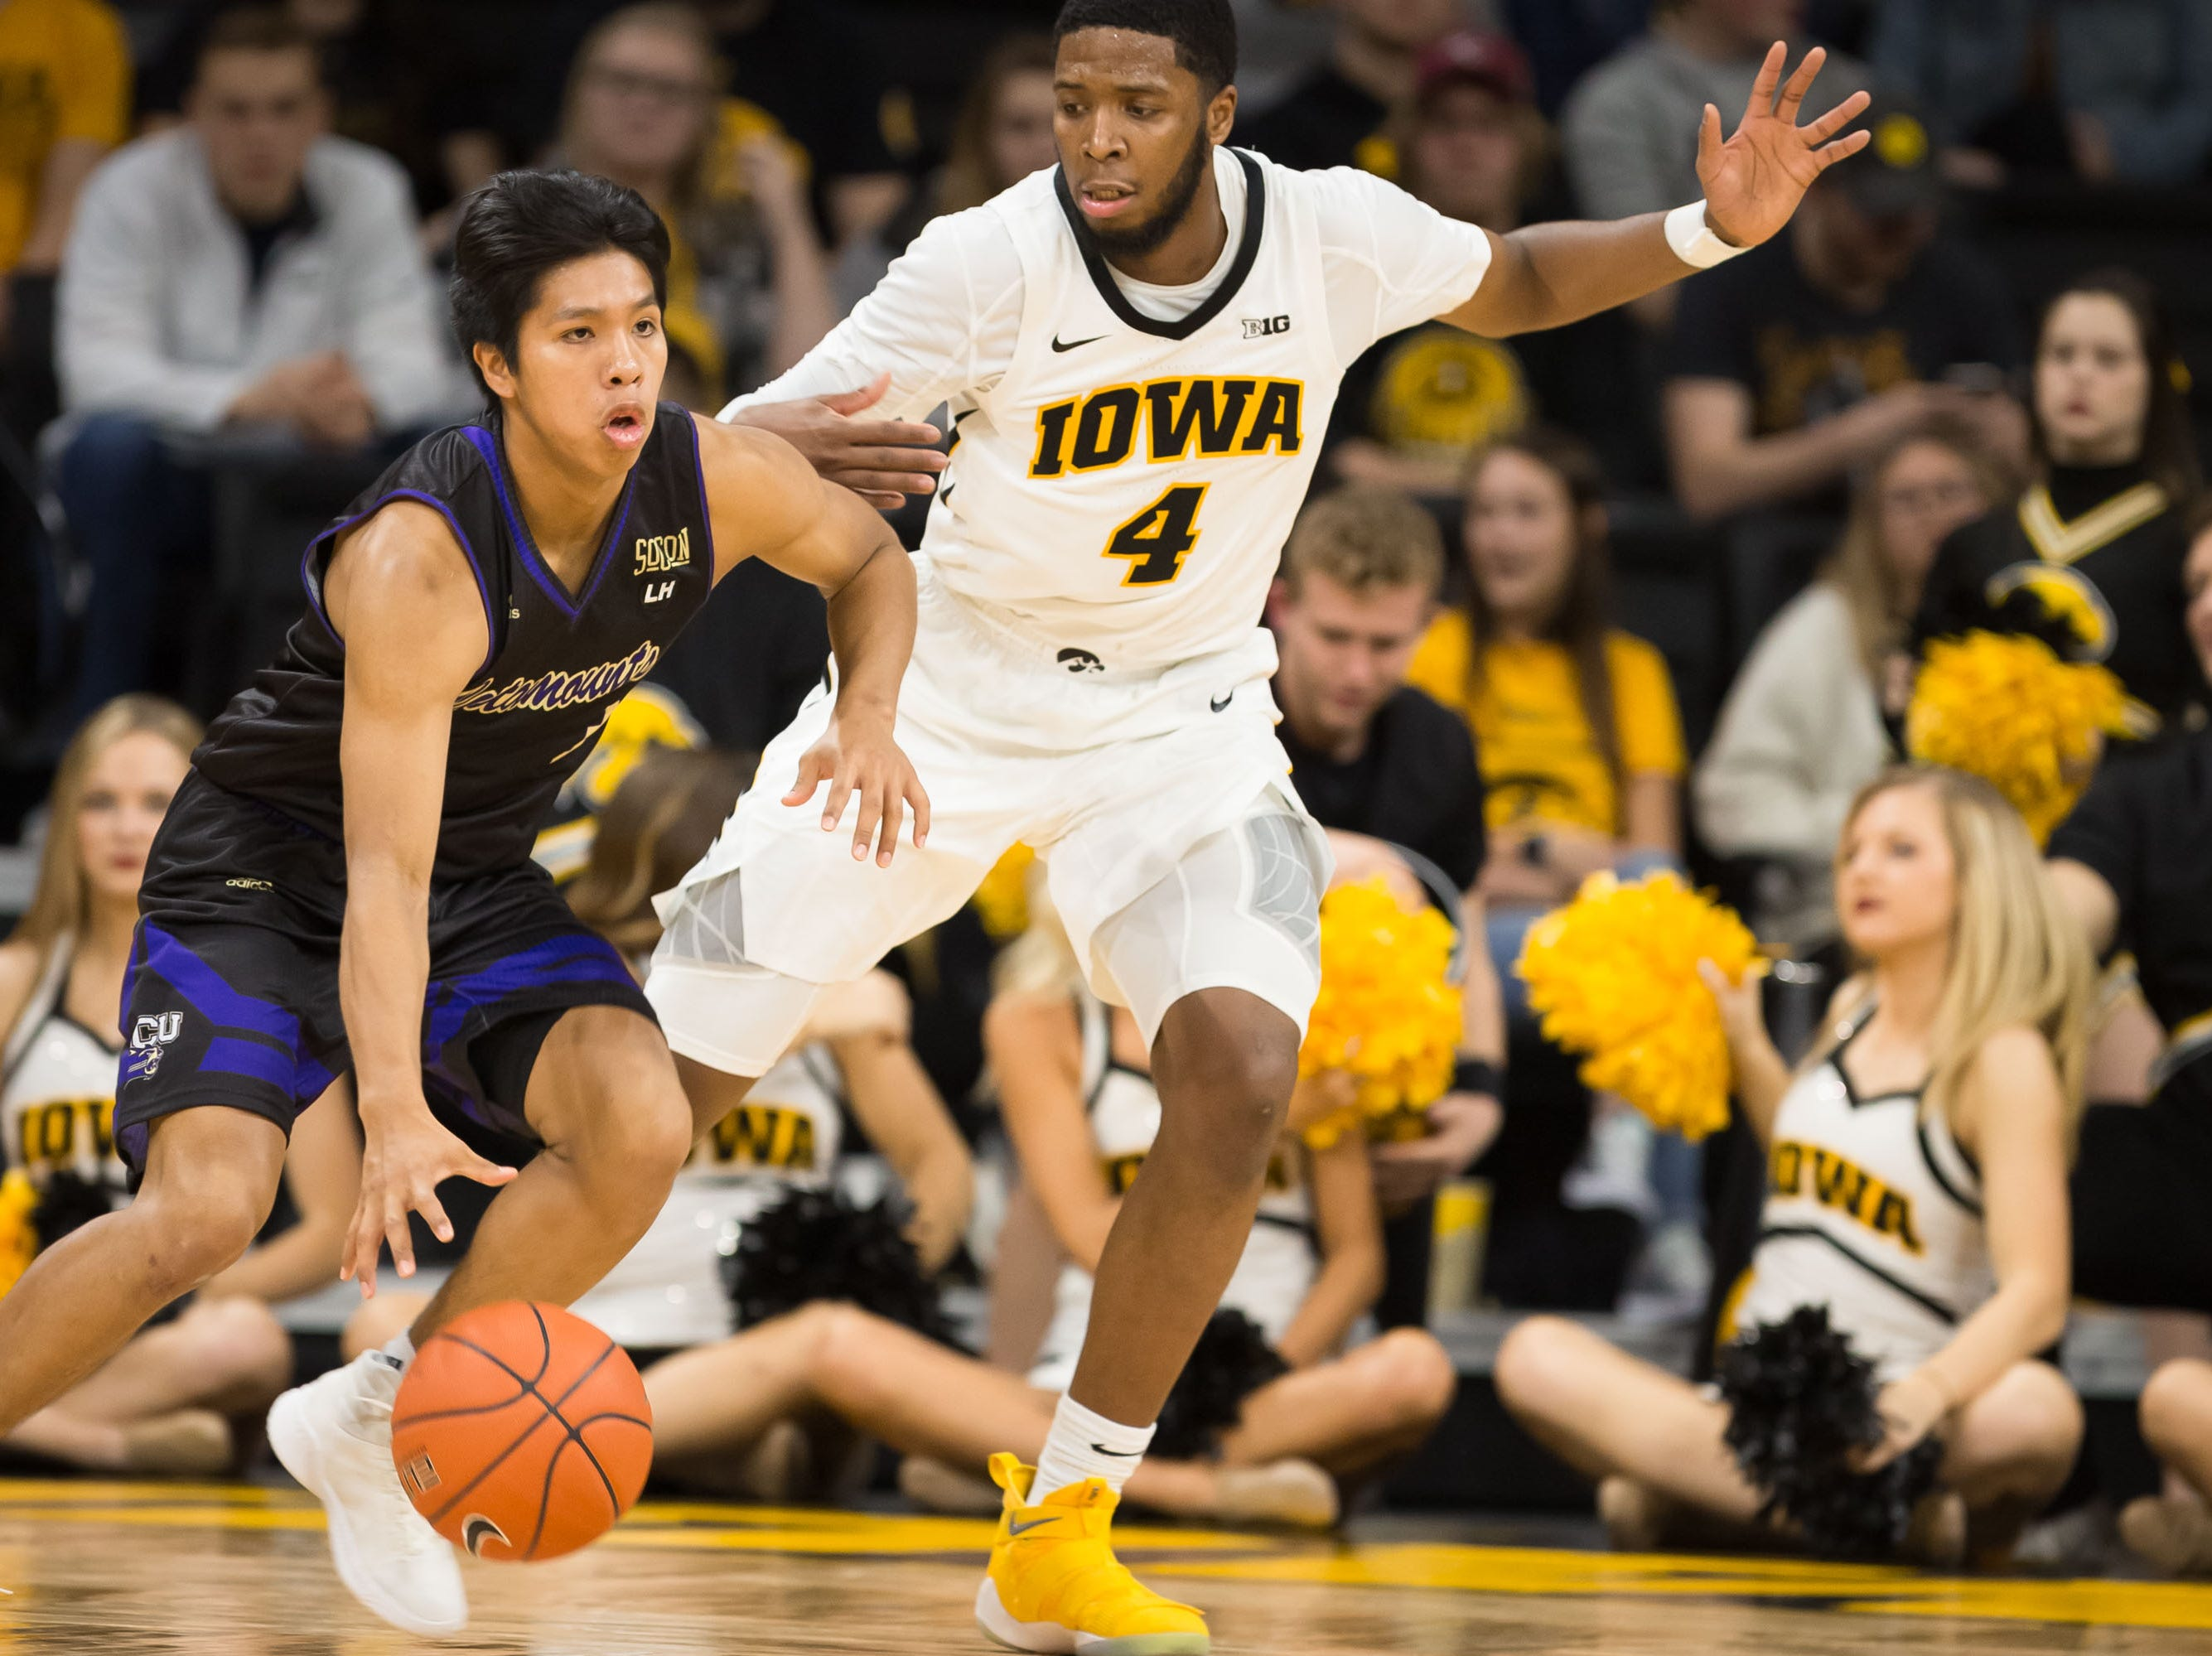 Western Carolina junior guard Jason McMillan (3) dribbles past Iowa junior guard Isaiah Moss (4) in the second half at Carver Hawkeye Arena in Iowa City on Tuesday, Dec. 18, 2018.